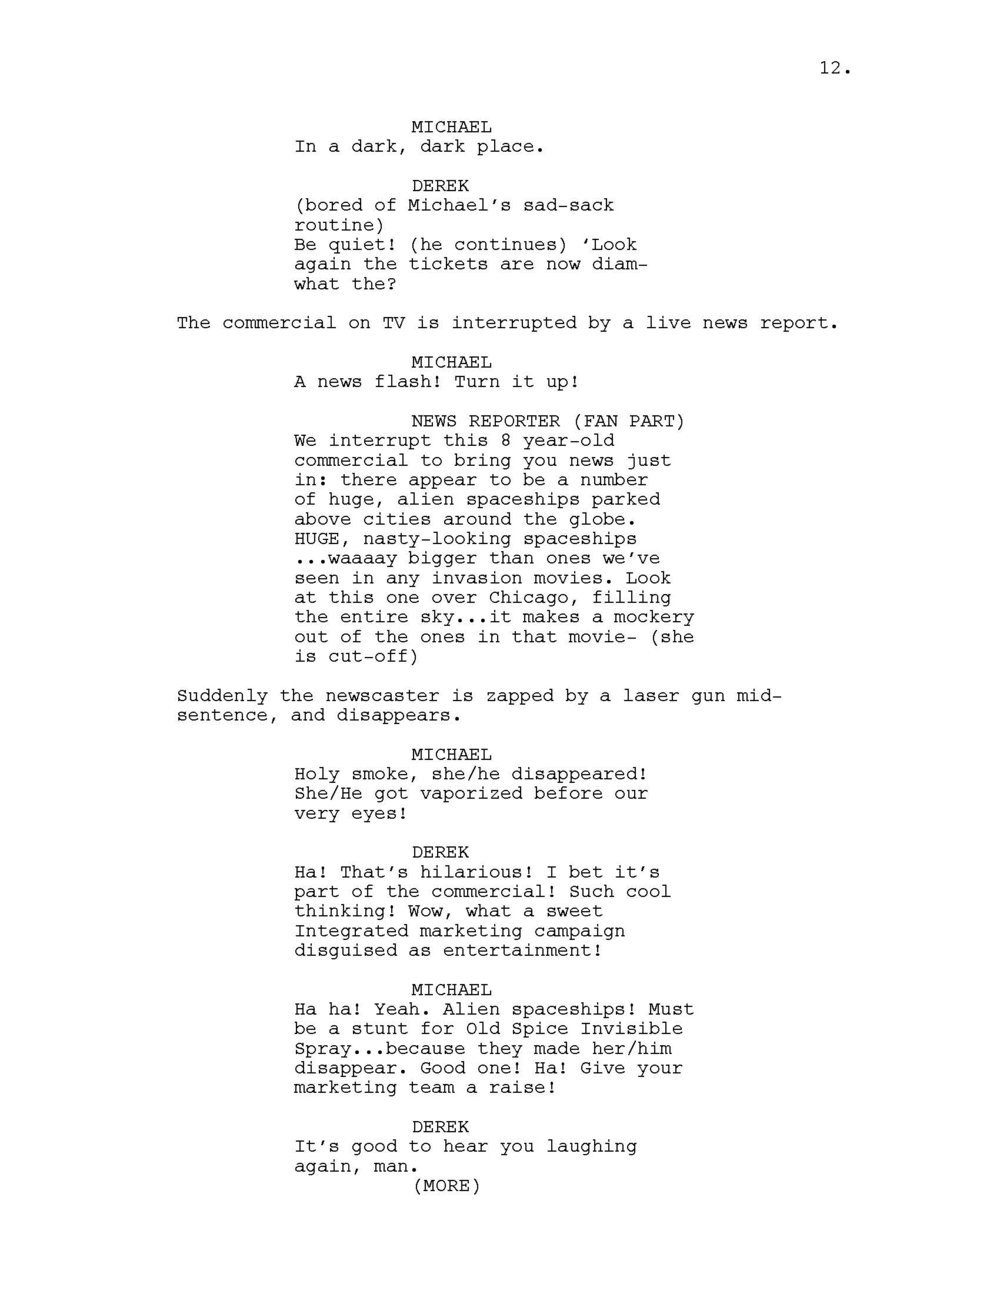 INVISIBLE WORLD SCRIPT_Page_013.jpg